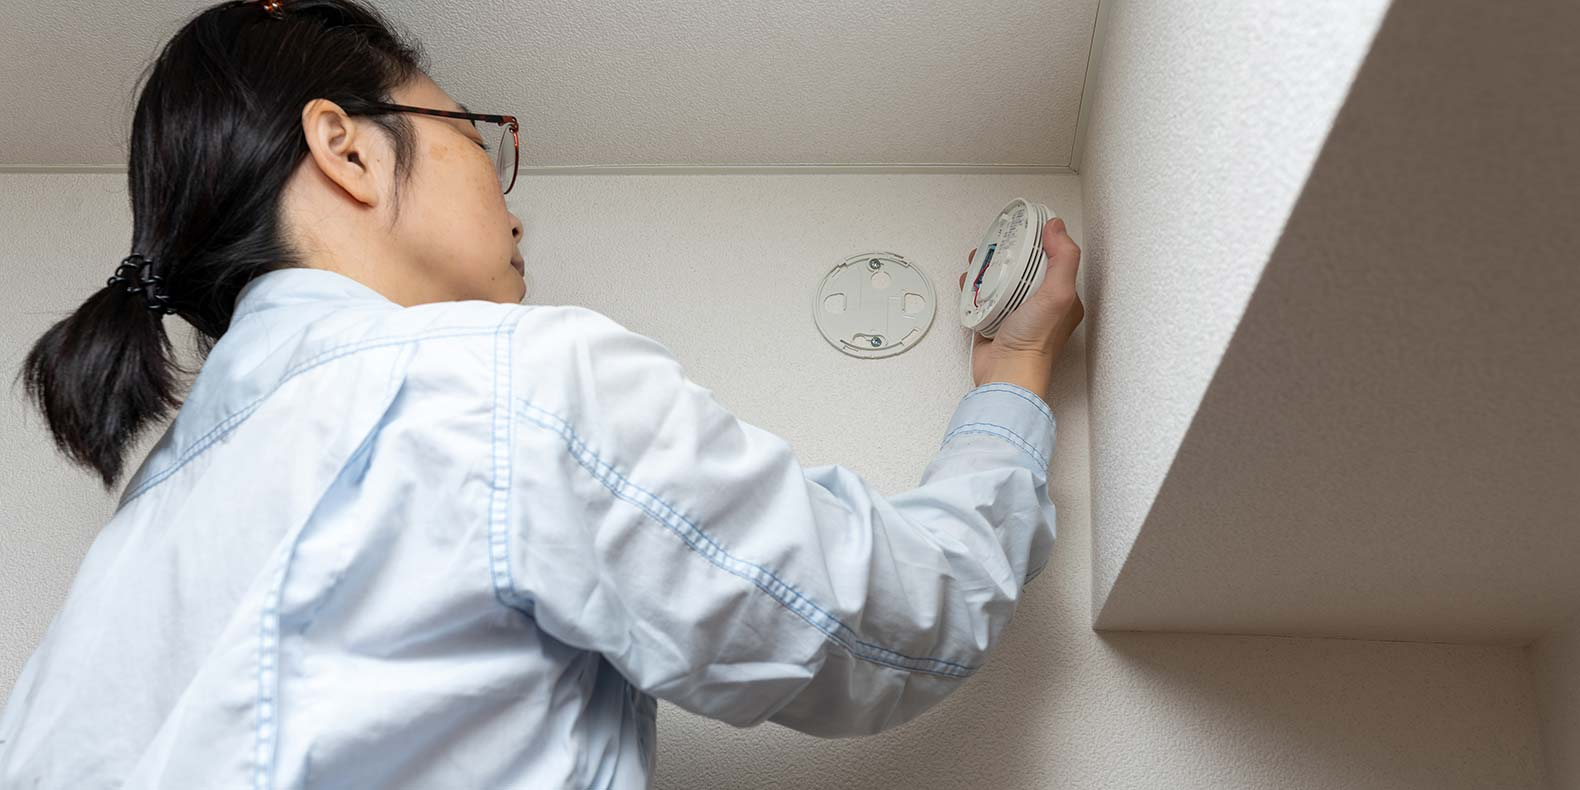 How to Reset Your Smoke Detector